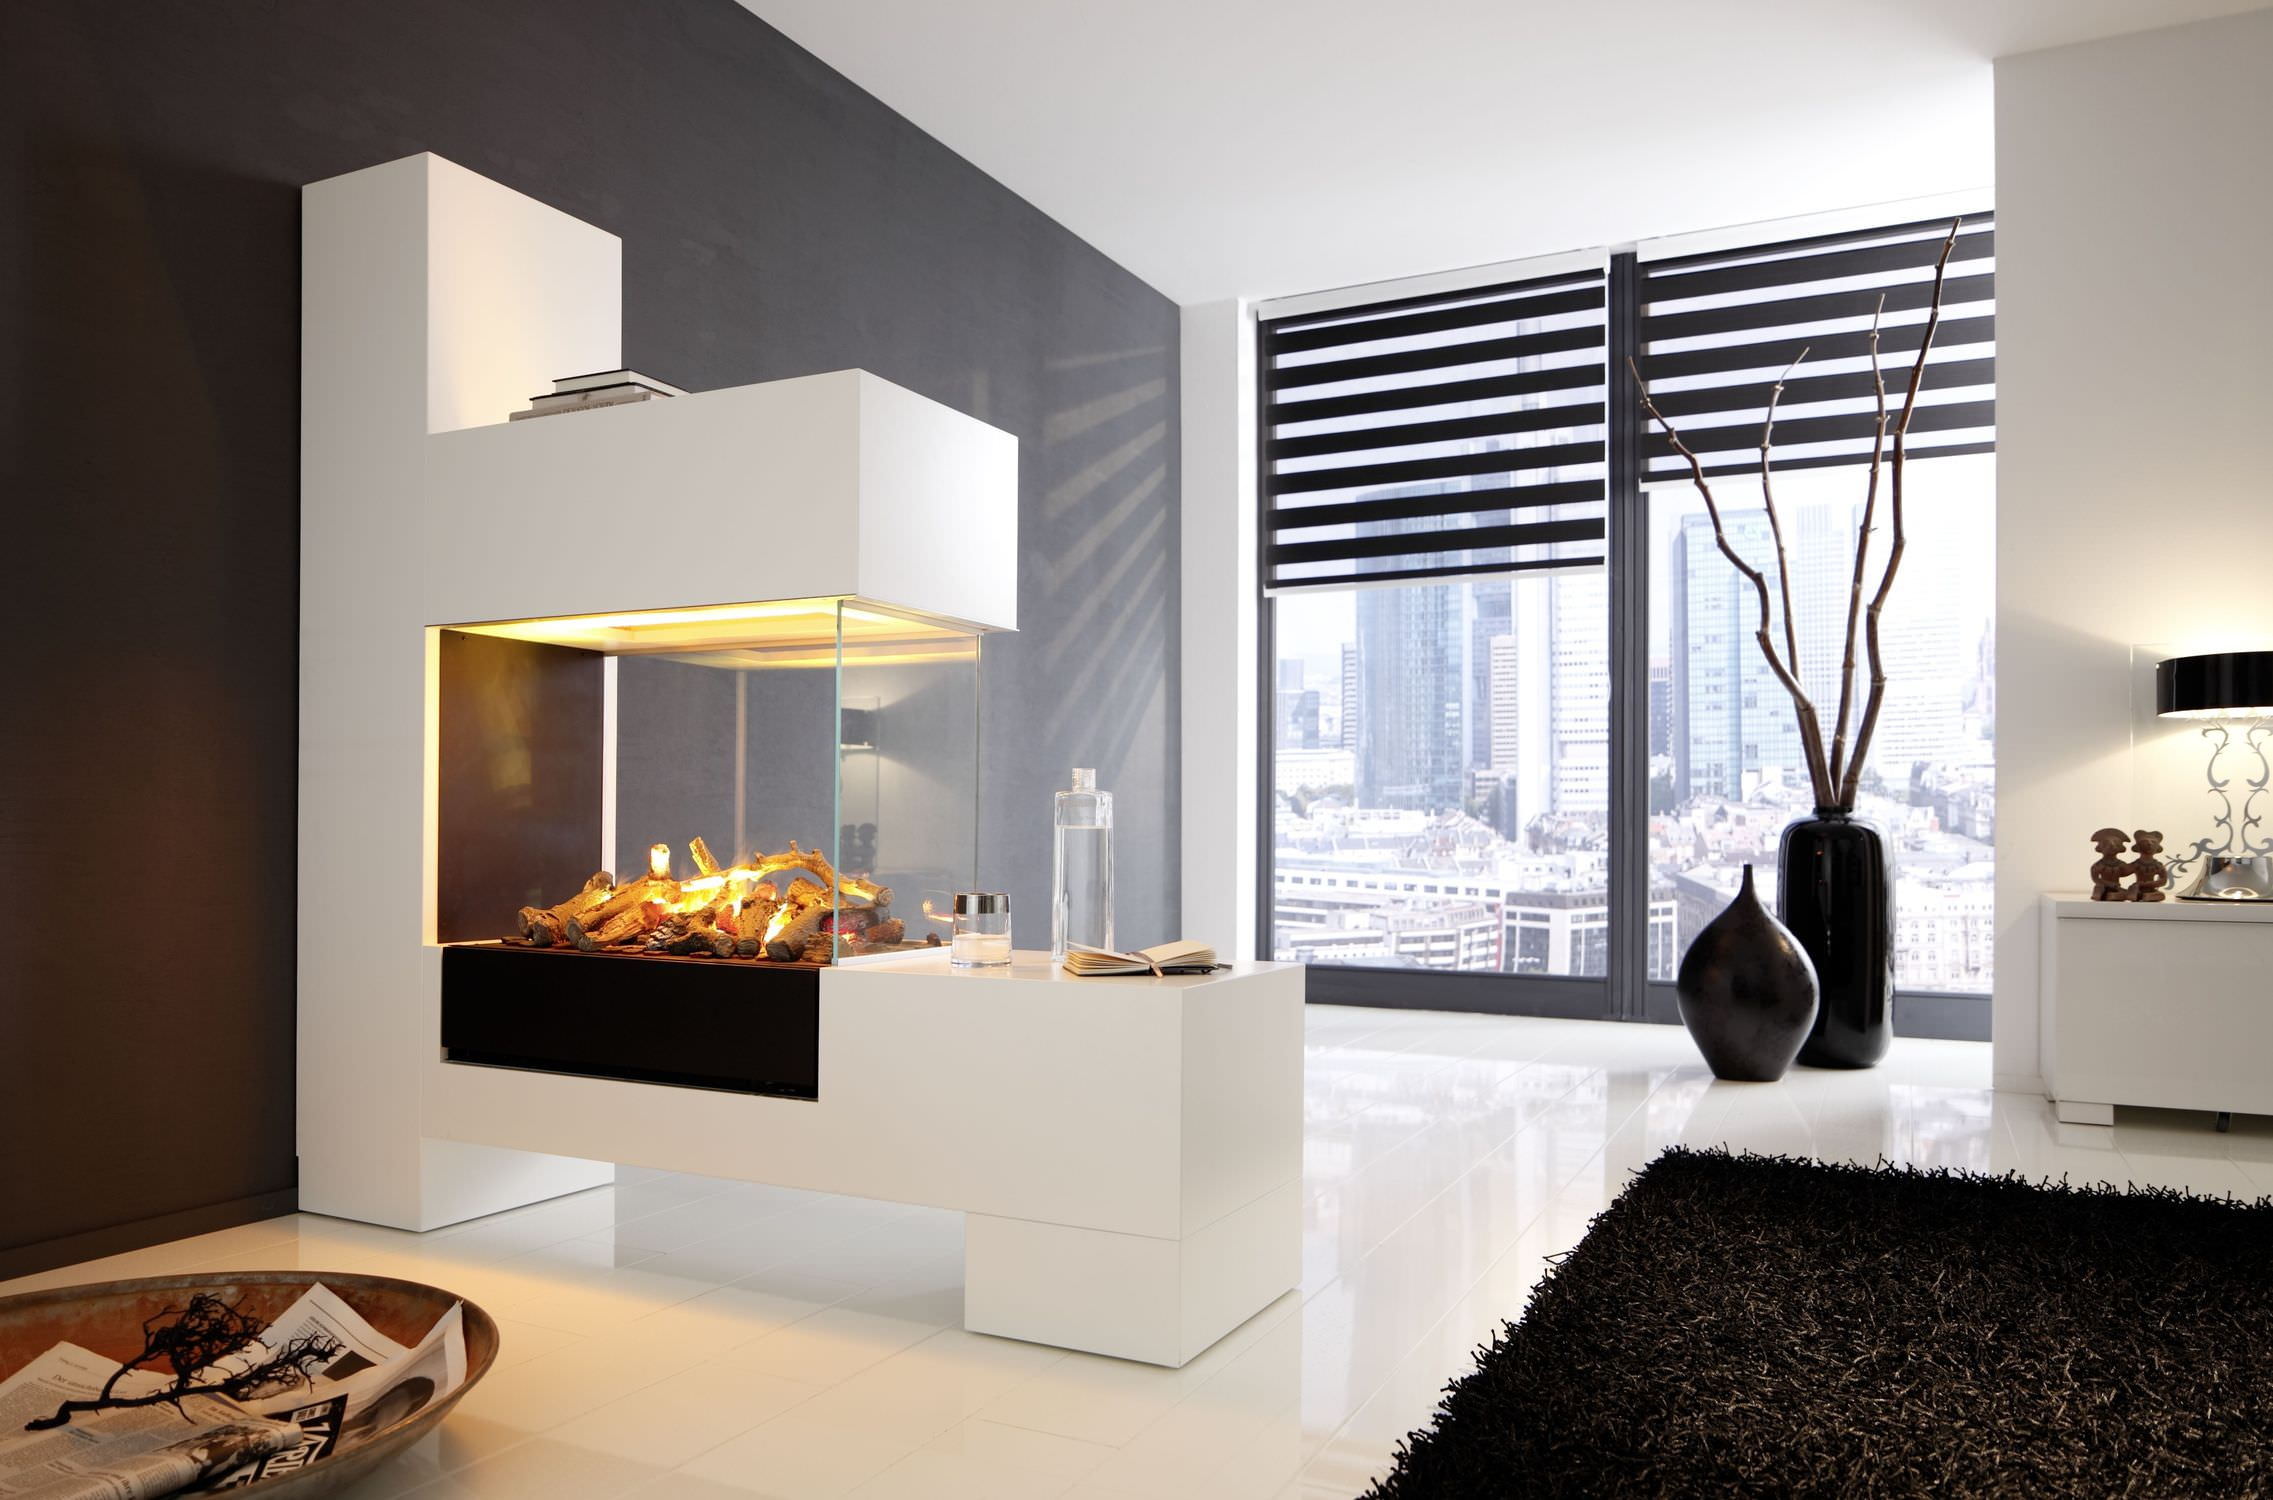 50 best modern fireplace designs and ideas for 2018. Black Bedroom Furniture Sets. Home Design Ideas